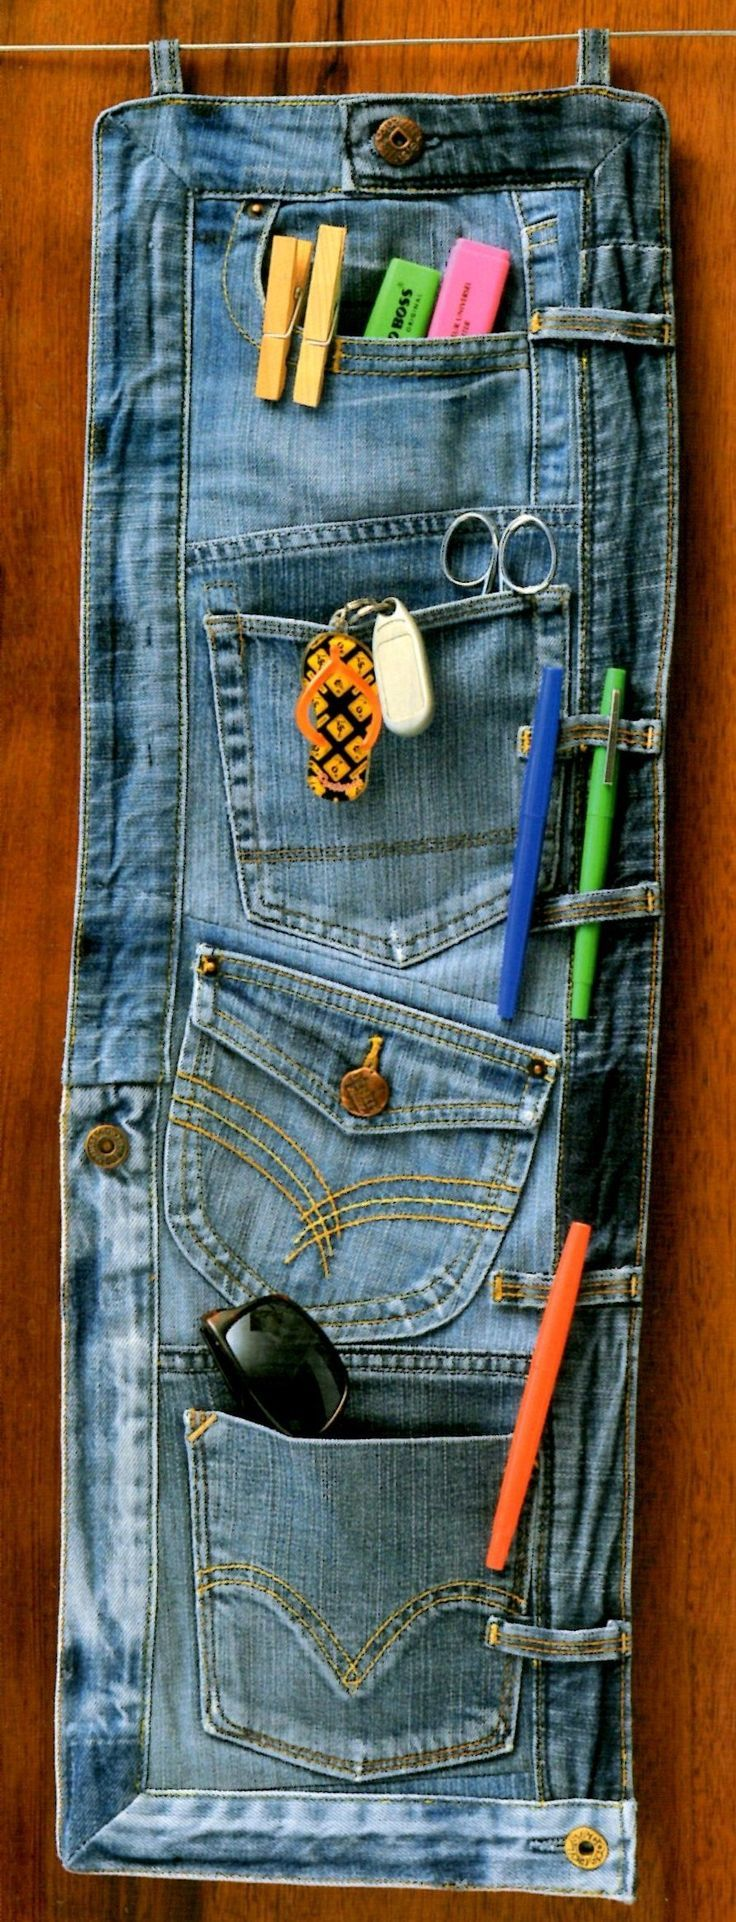 How to recycle an old bluejeans into an organiser. Look for jeans at your local #Goodwill Store! www.goodwillvalleys.com/shop/